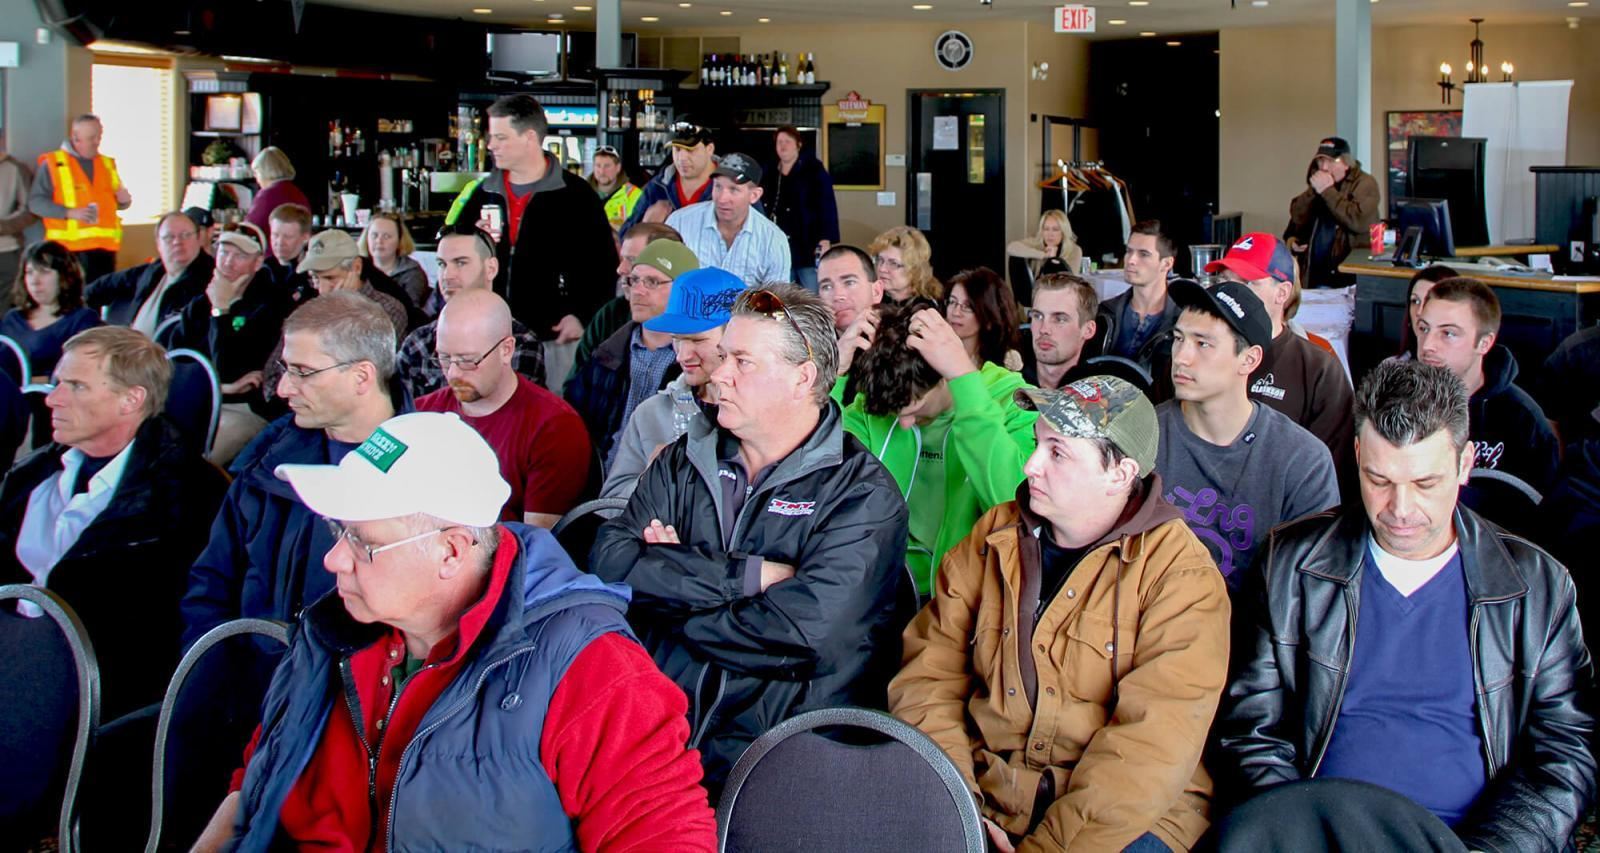 Georgian Lakelands Chapter organizers were pleased with the huge attendance at its Mar. 5 meeting.